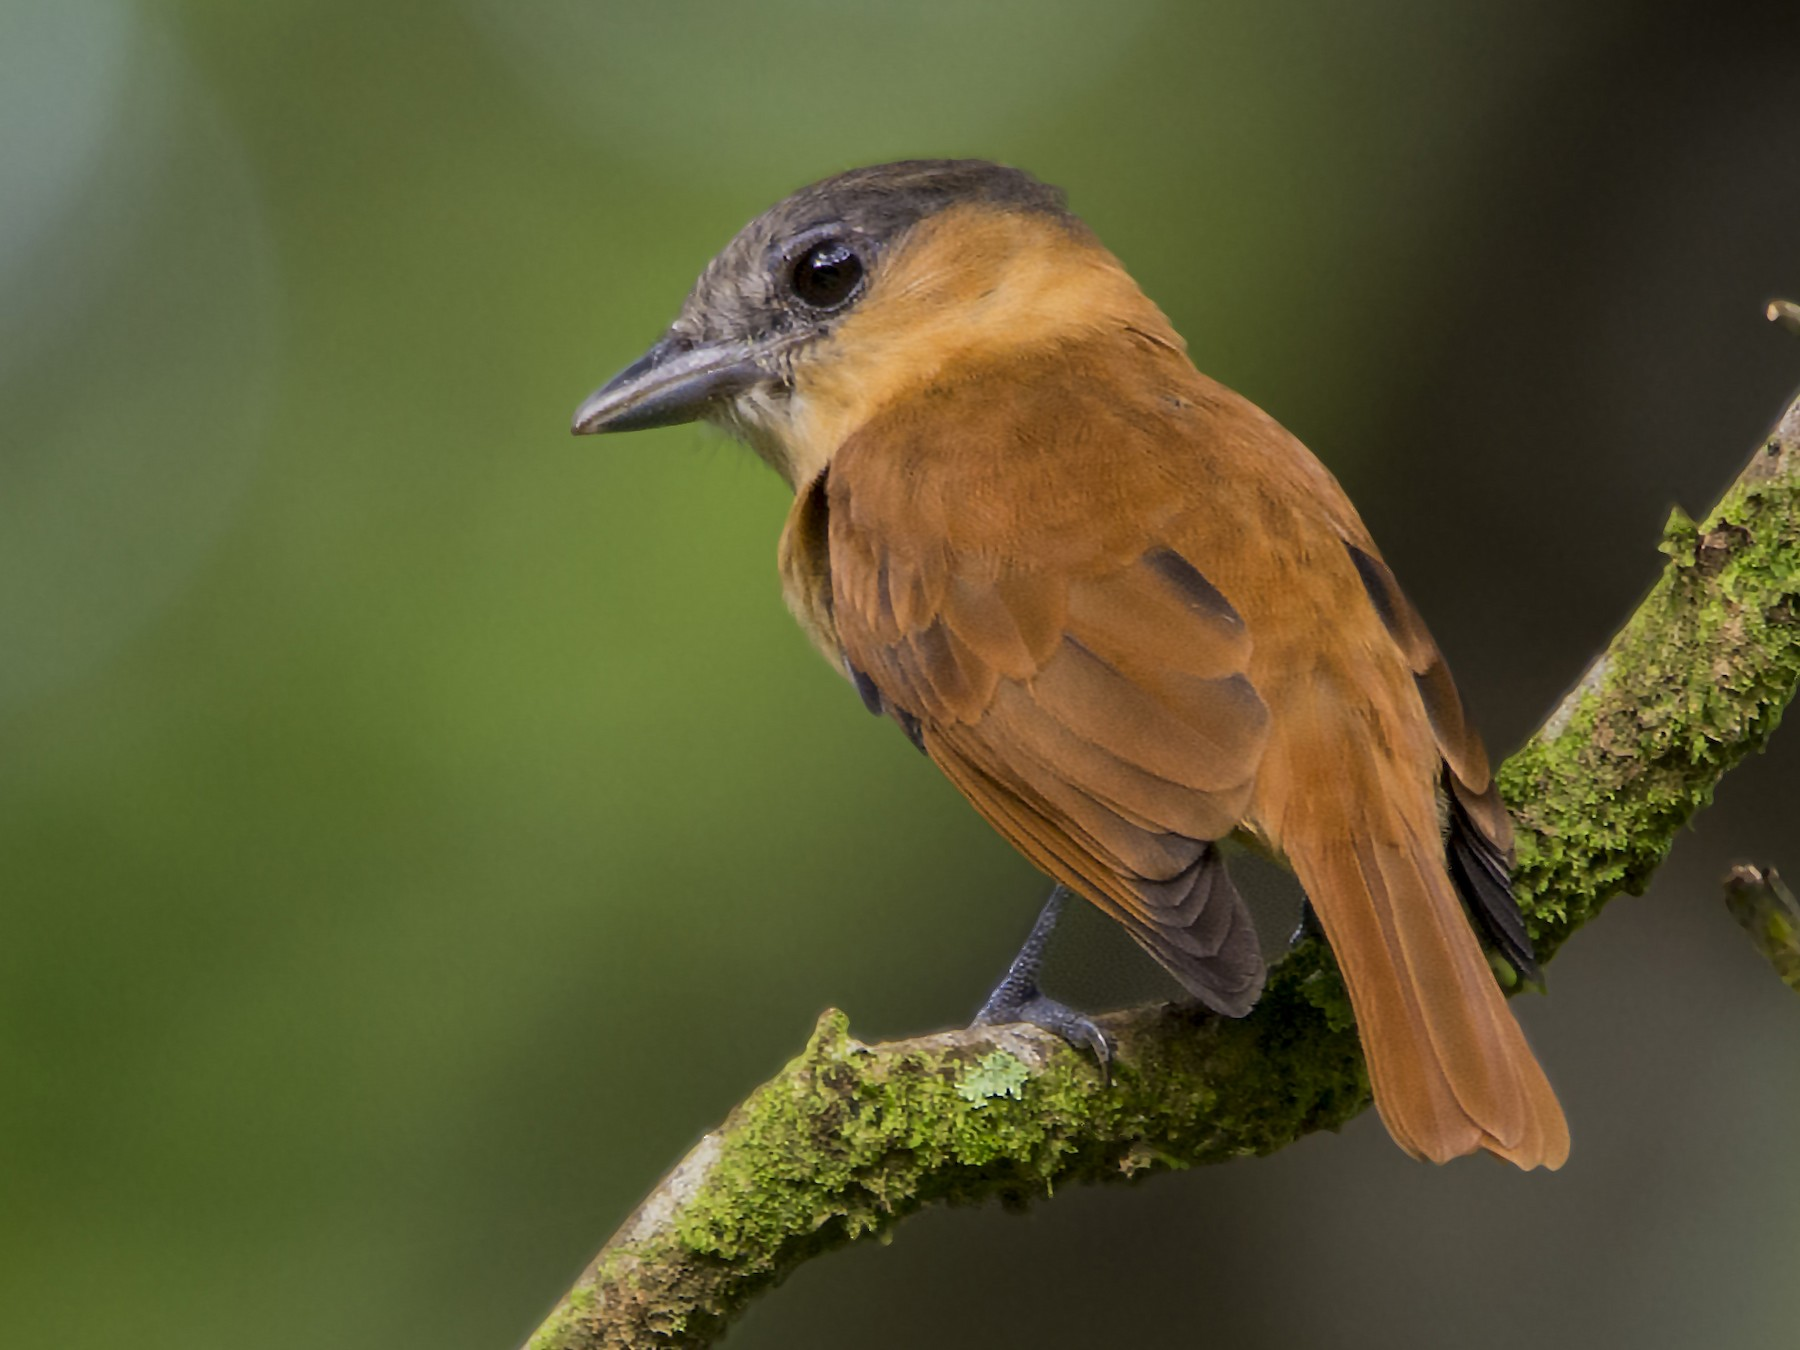 Rose-throated Becard - Leandro Arias